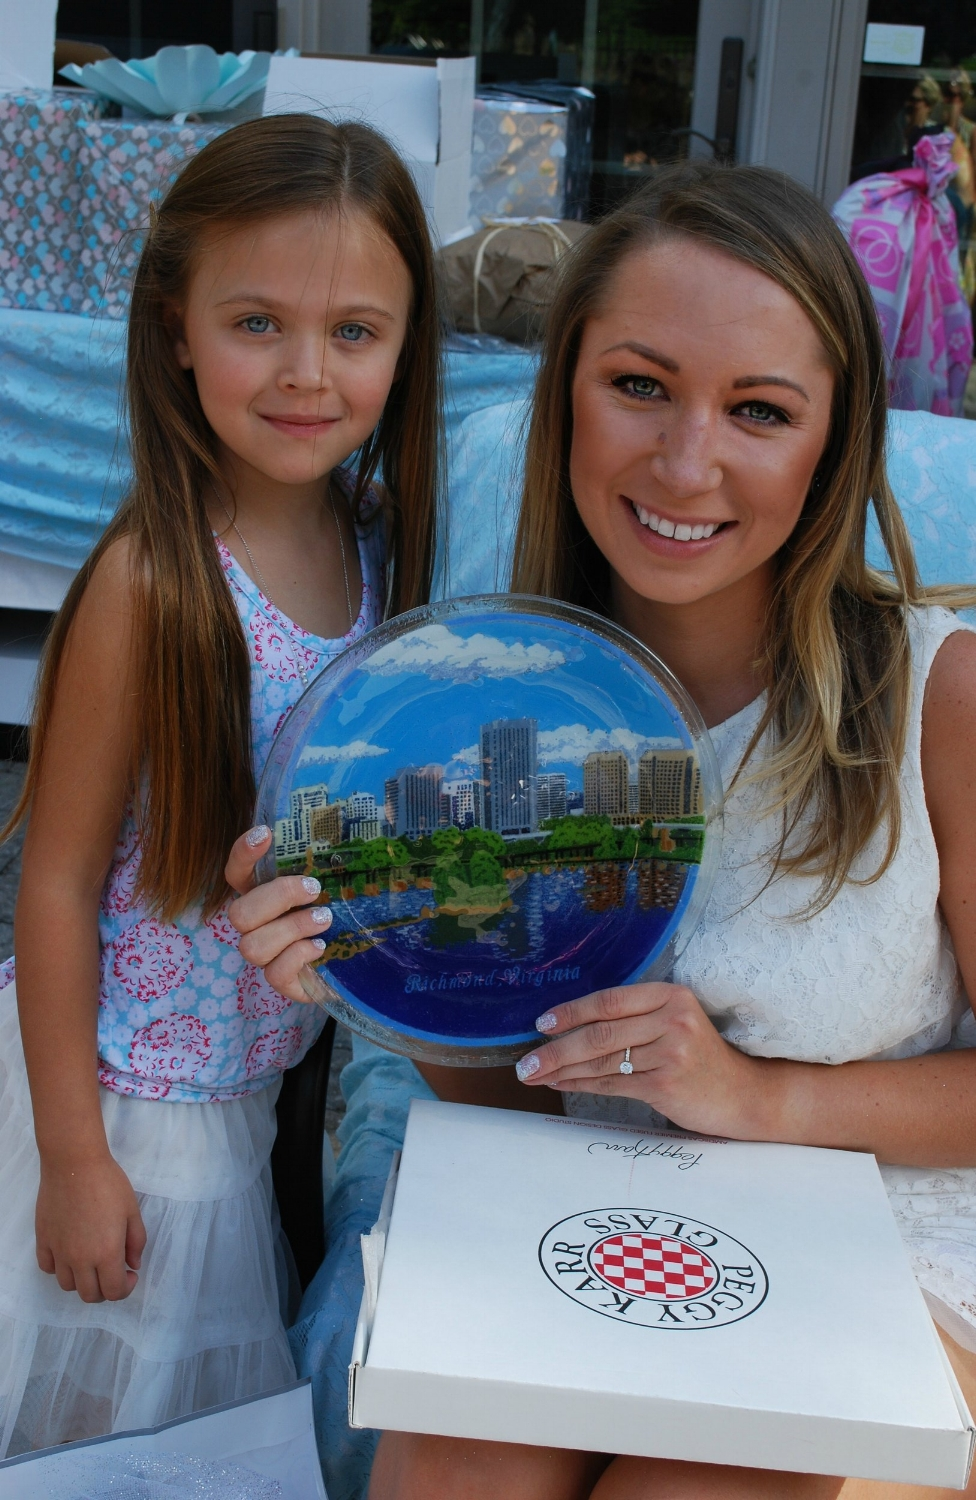 Brielle was so surprised to open this beautiful present from our dear friend, Mary Bott. I think Mary was also surprised to find out that one of the buildings depicted in this artisan glasswork design was actually Alex's office building! Brielle absolutely loved this gift and couldn't wait to show Alex.